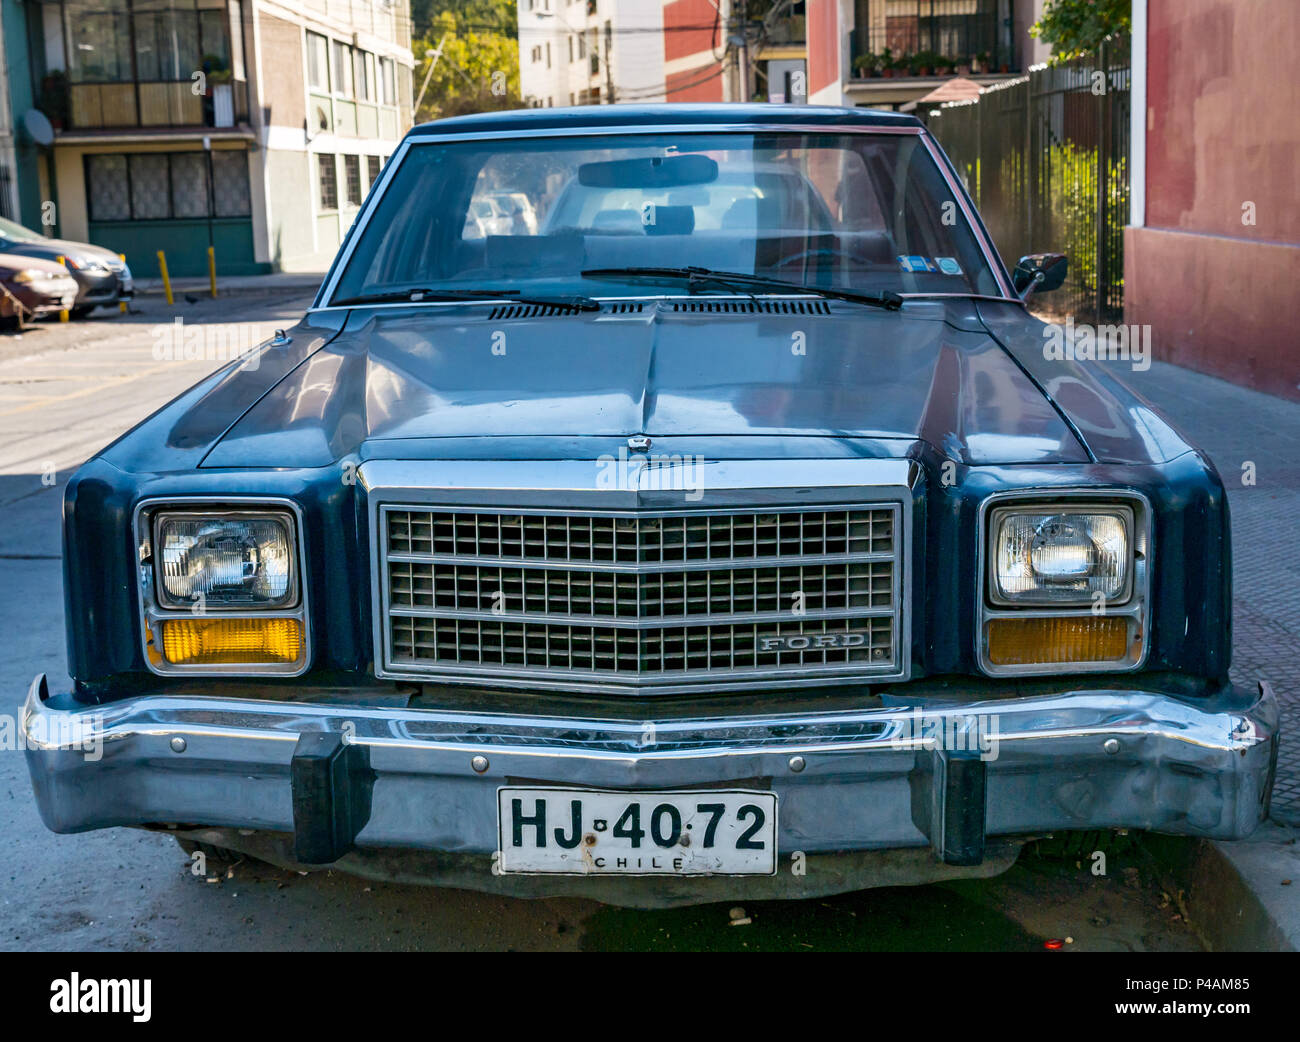 old-ford-car-parked-in-street-santiago-c